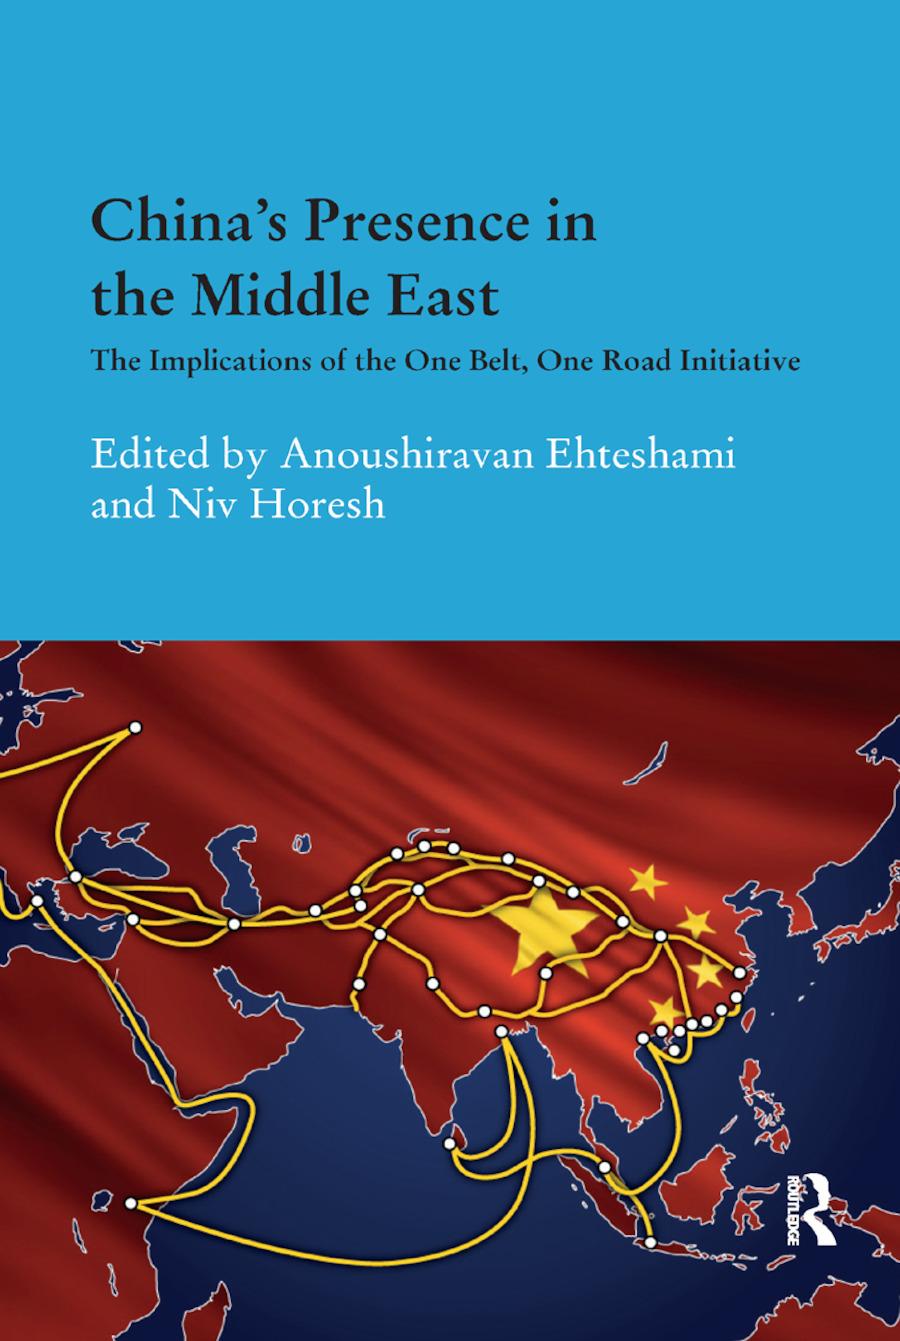 China's Presence in the Middle East: The Implications of the One Belt, One Road Initiative book cover